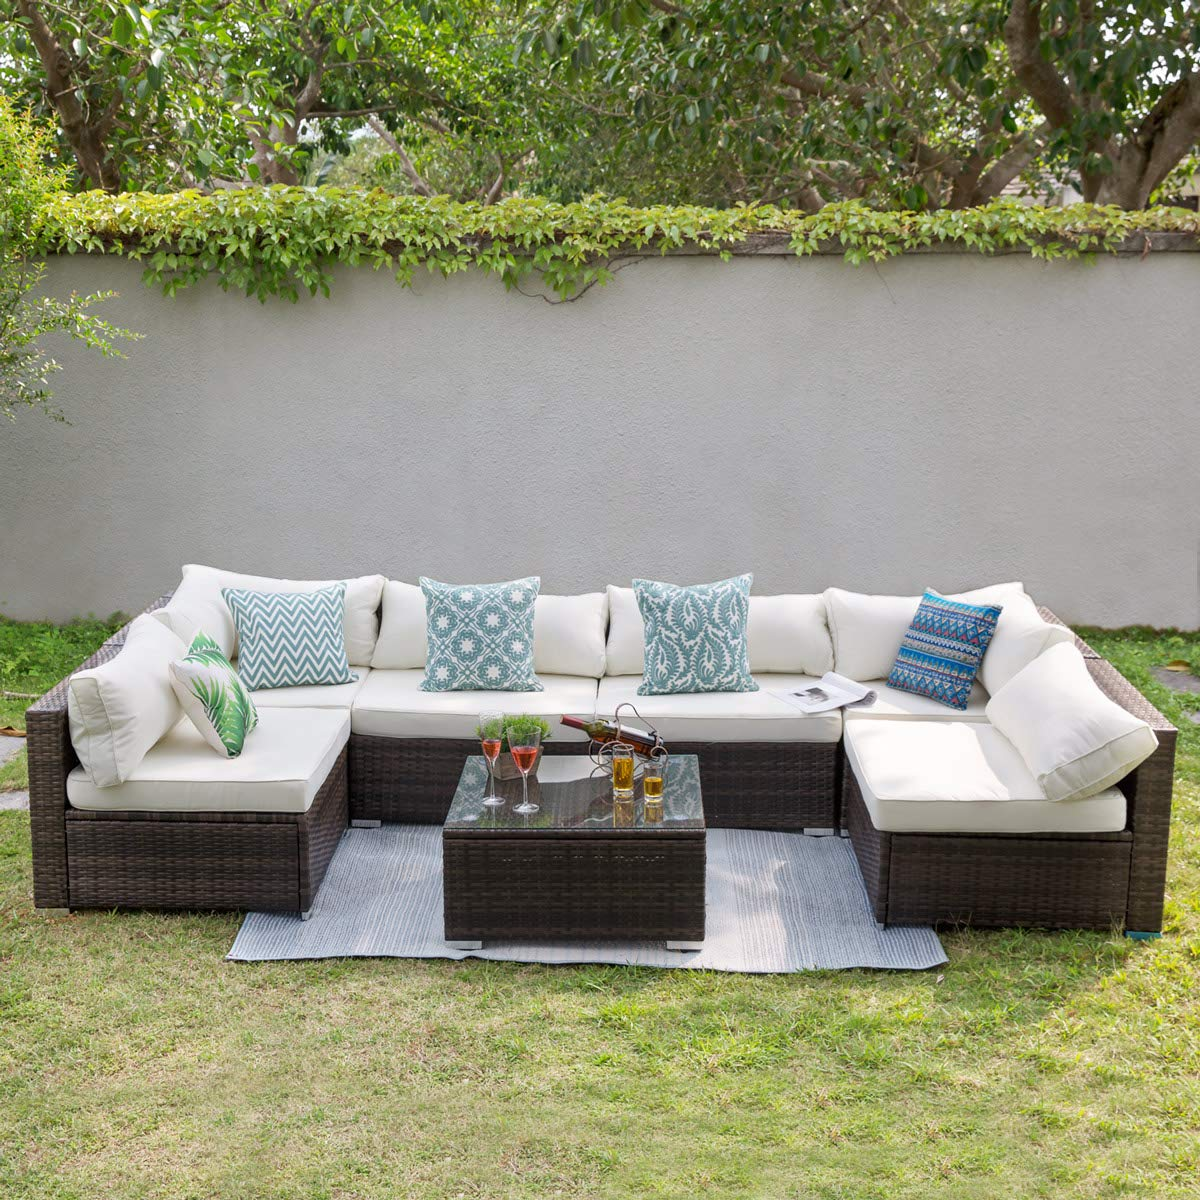 Tribesigns 7 PCS Outdoor Patio Furniture Sectional Sofa Set, Extra Large  Wicker Sofa Rattan Couch Conversation Set with Waterproof Cushions, Garden  ...